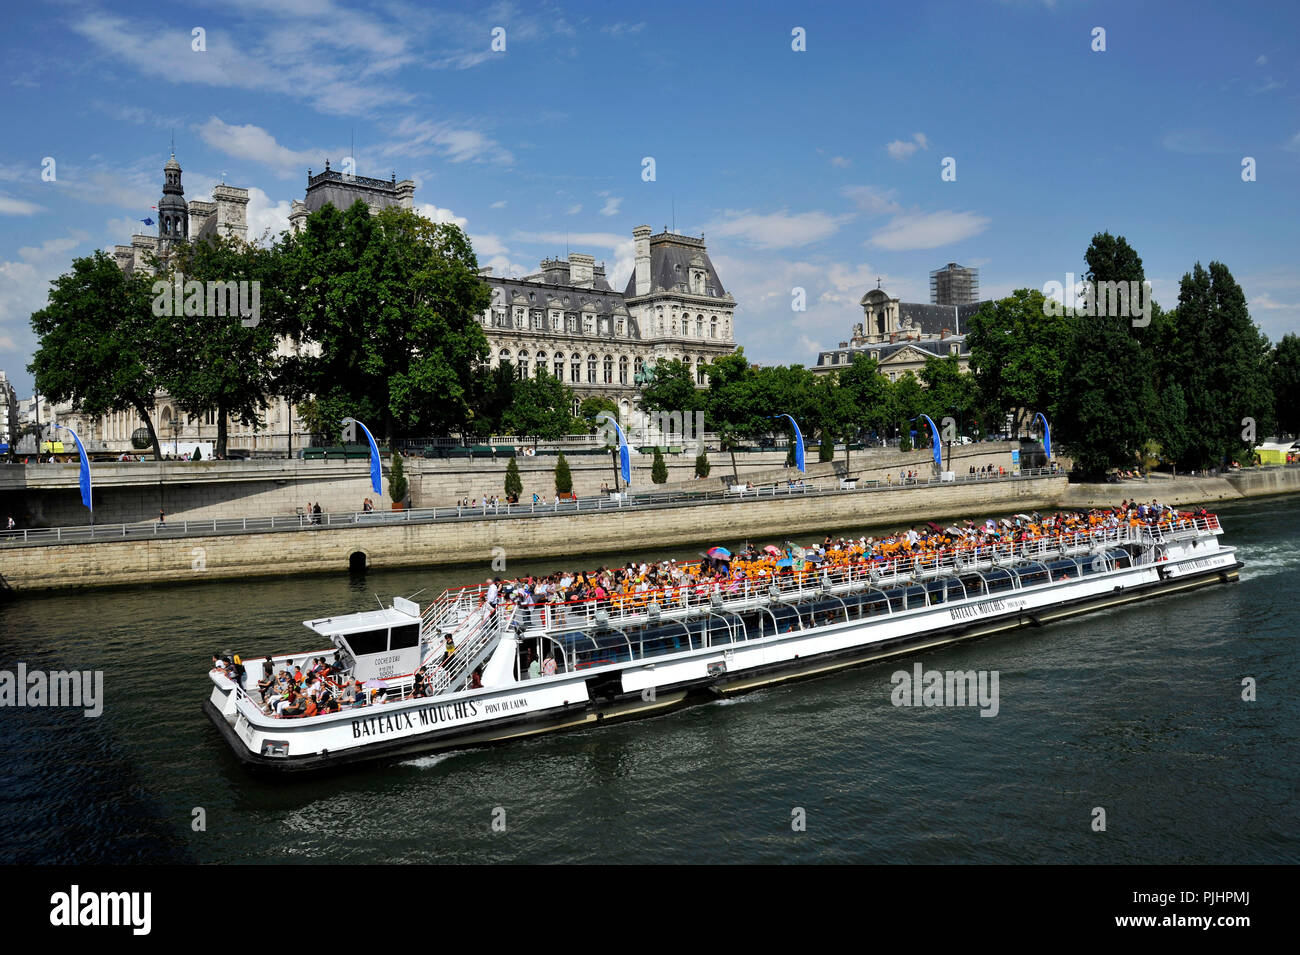 France, Paris City, riverboat carrying visitors on the Seine in front of Paris City Hall. - Stock Image